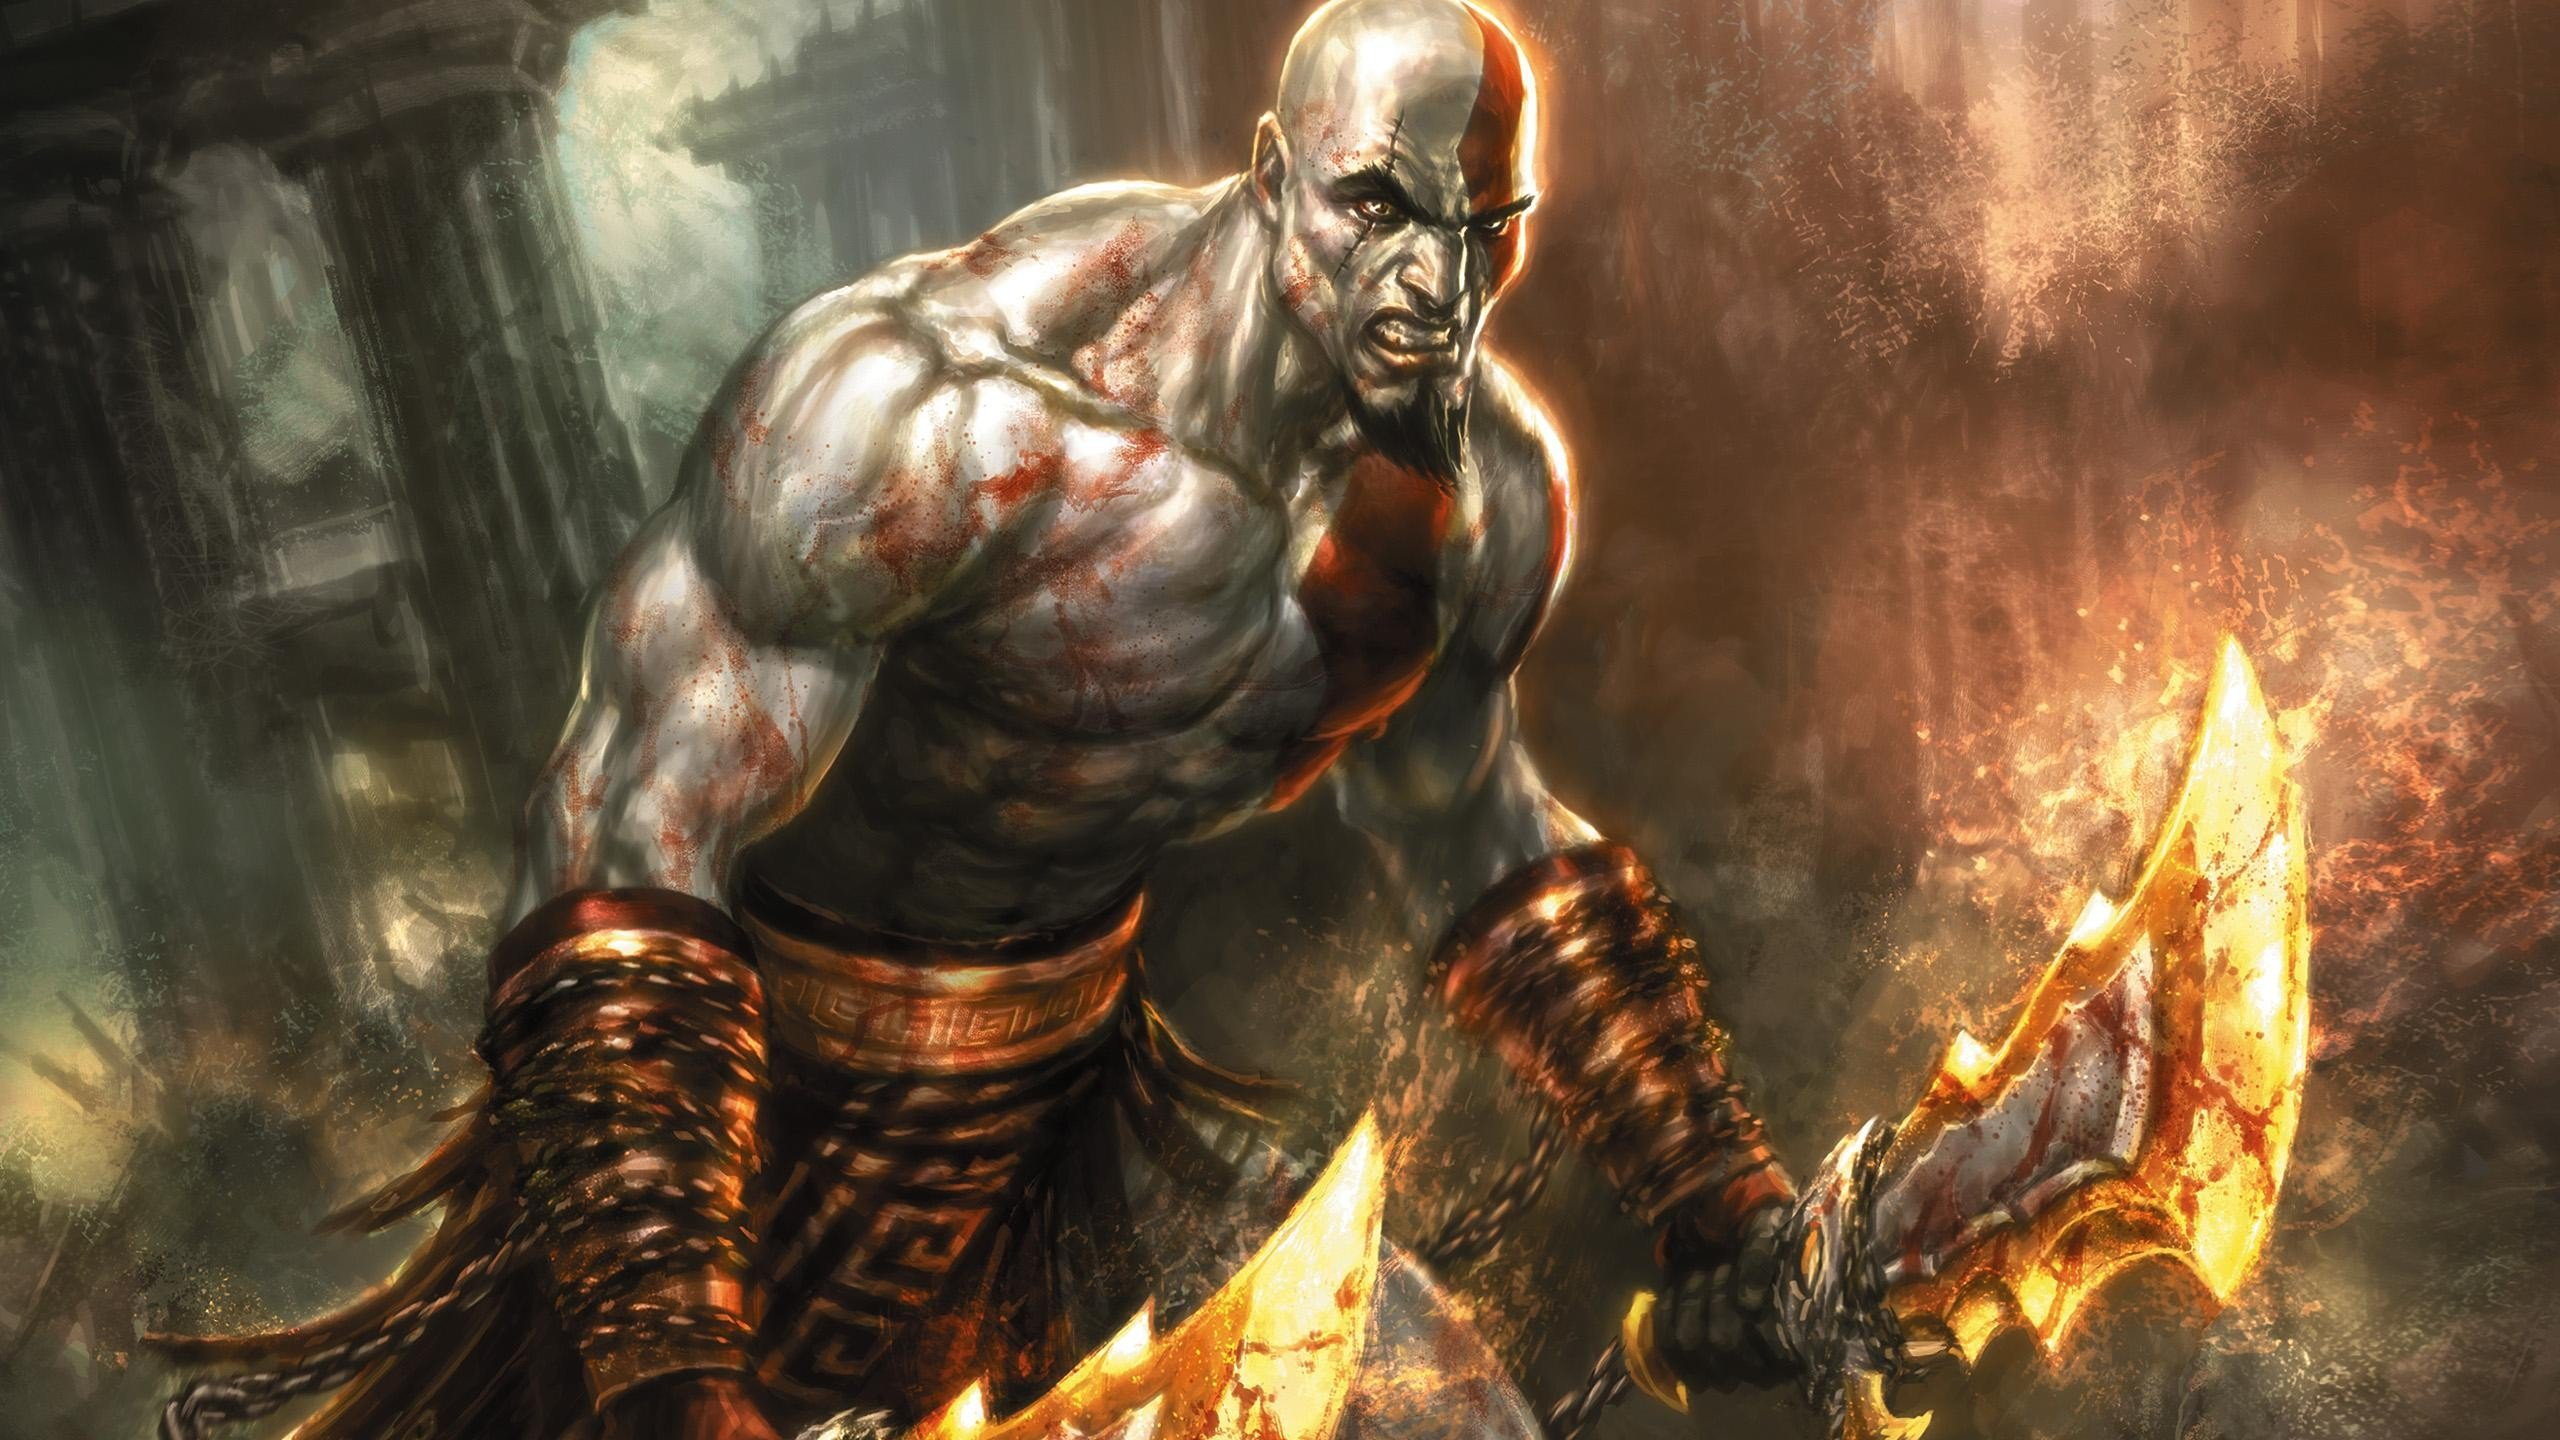 4008883-game-wallpapers-kratos-god-war-wallpaper-31421